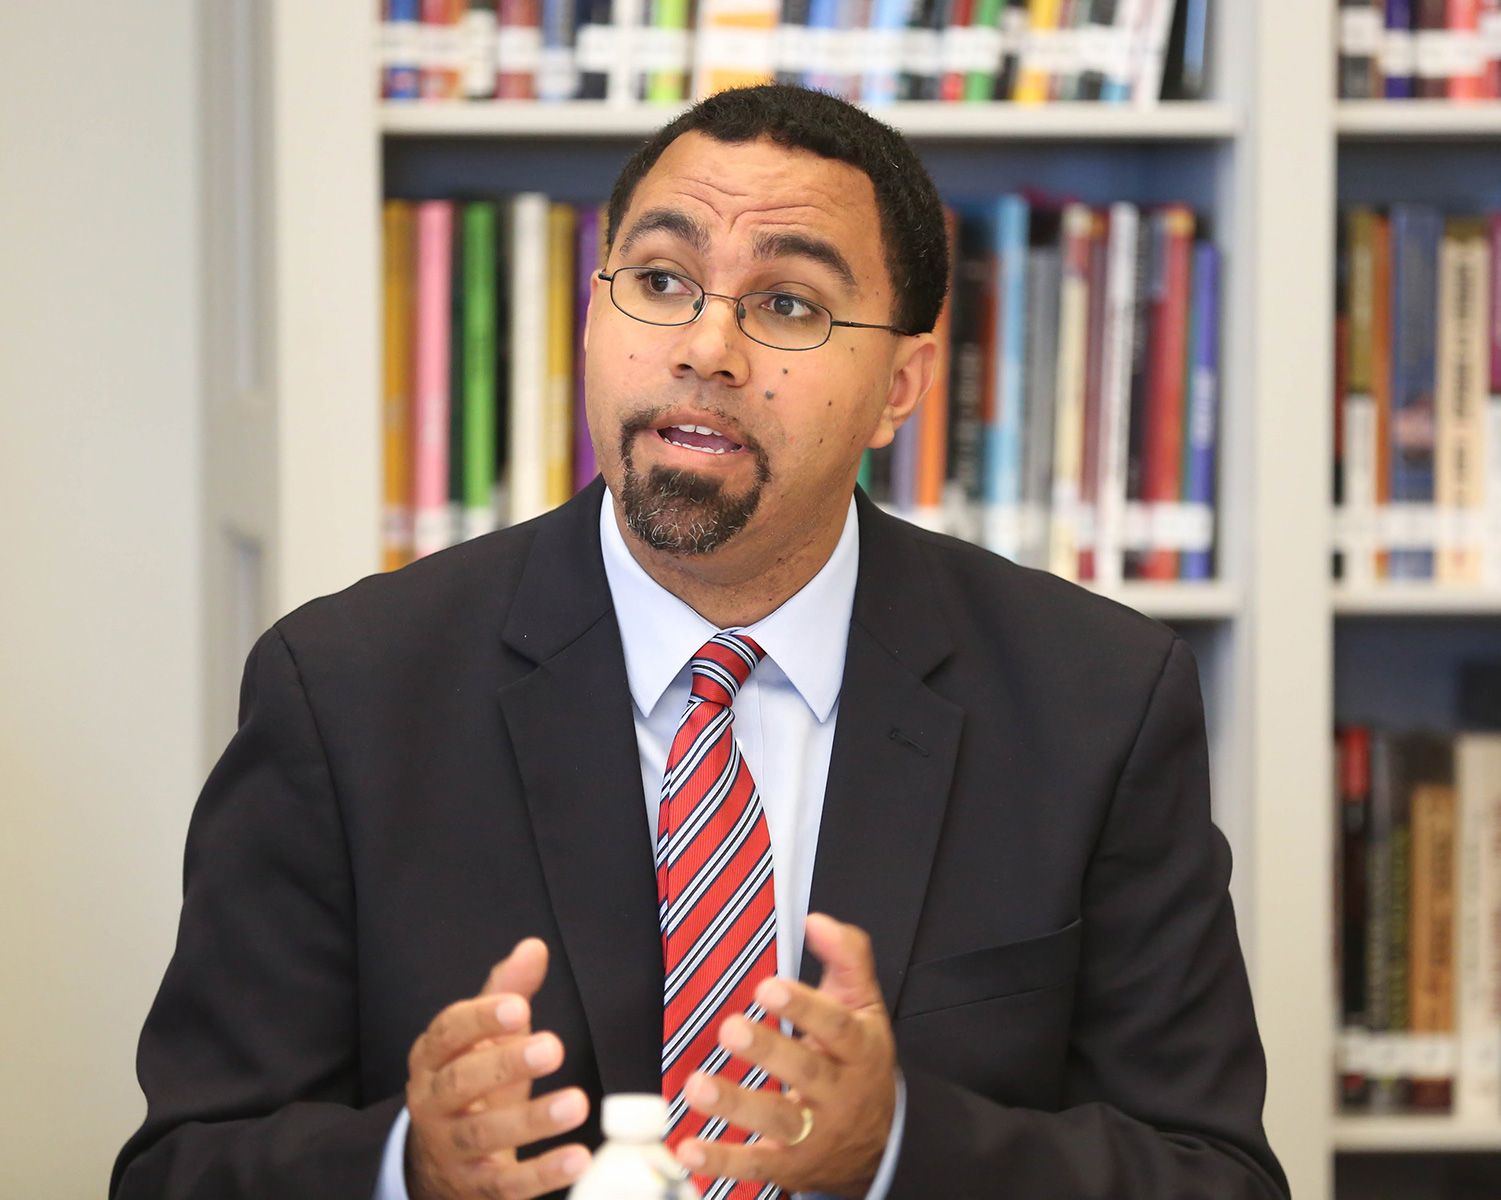 JOHN KING JR., Secretary of Education